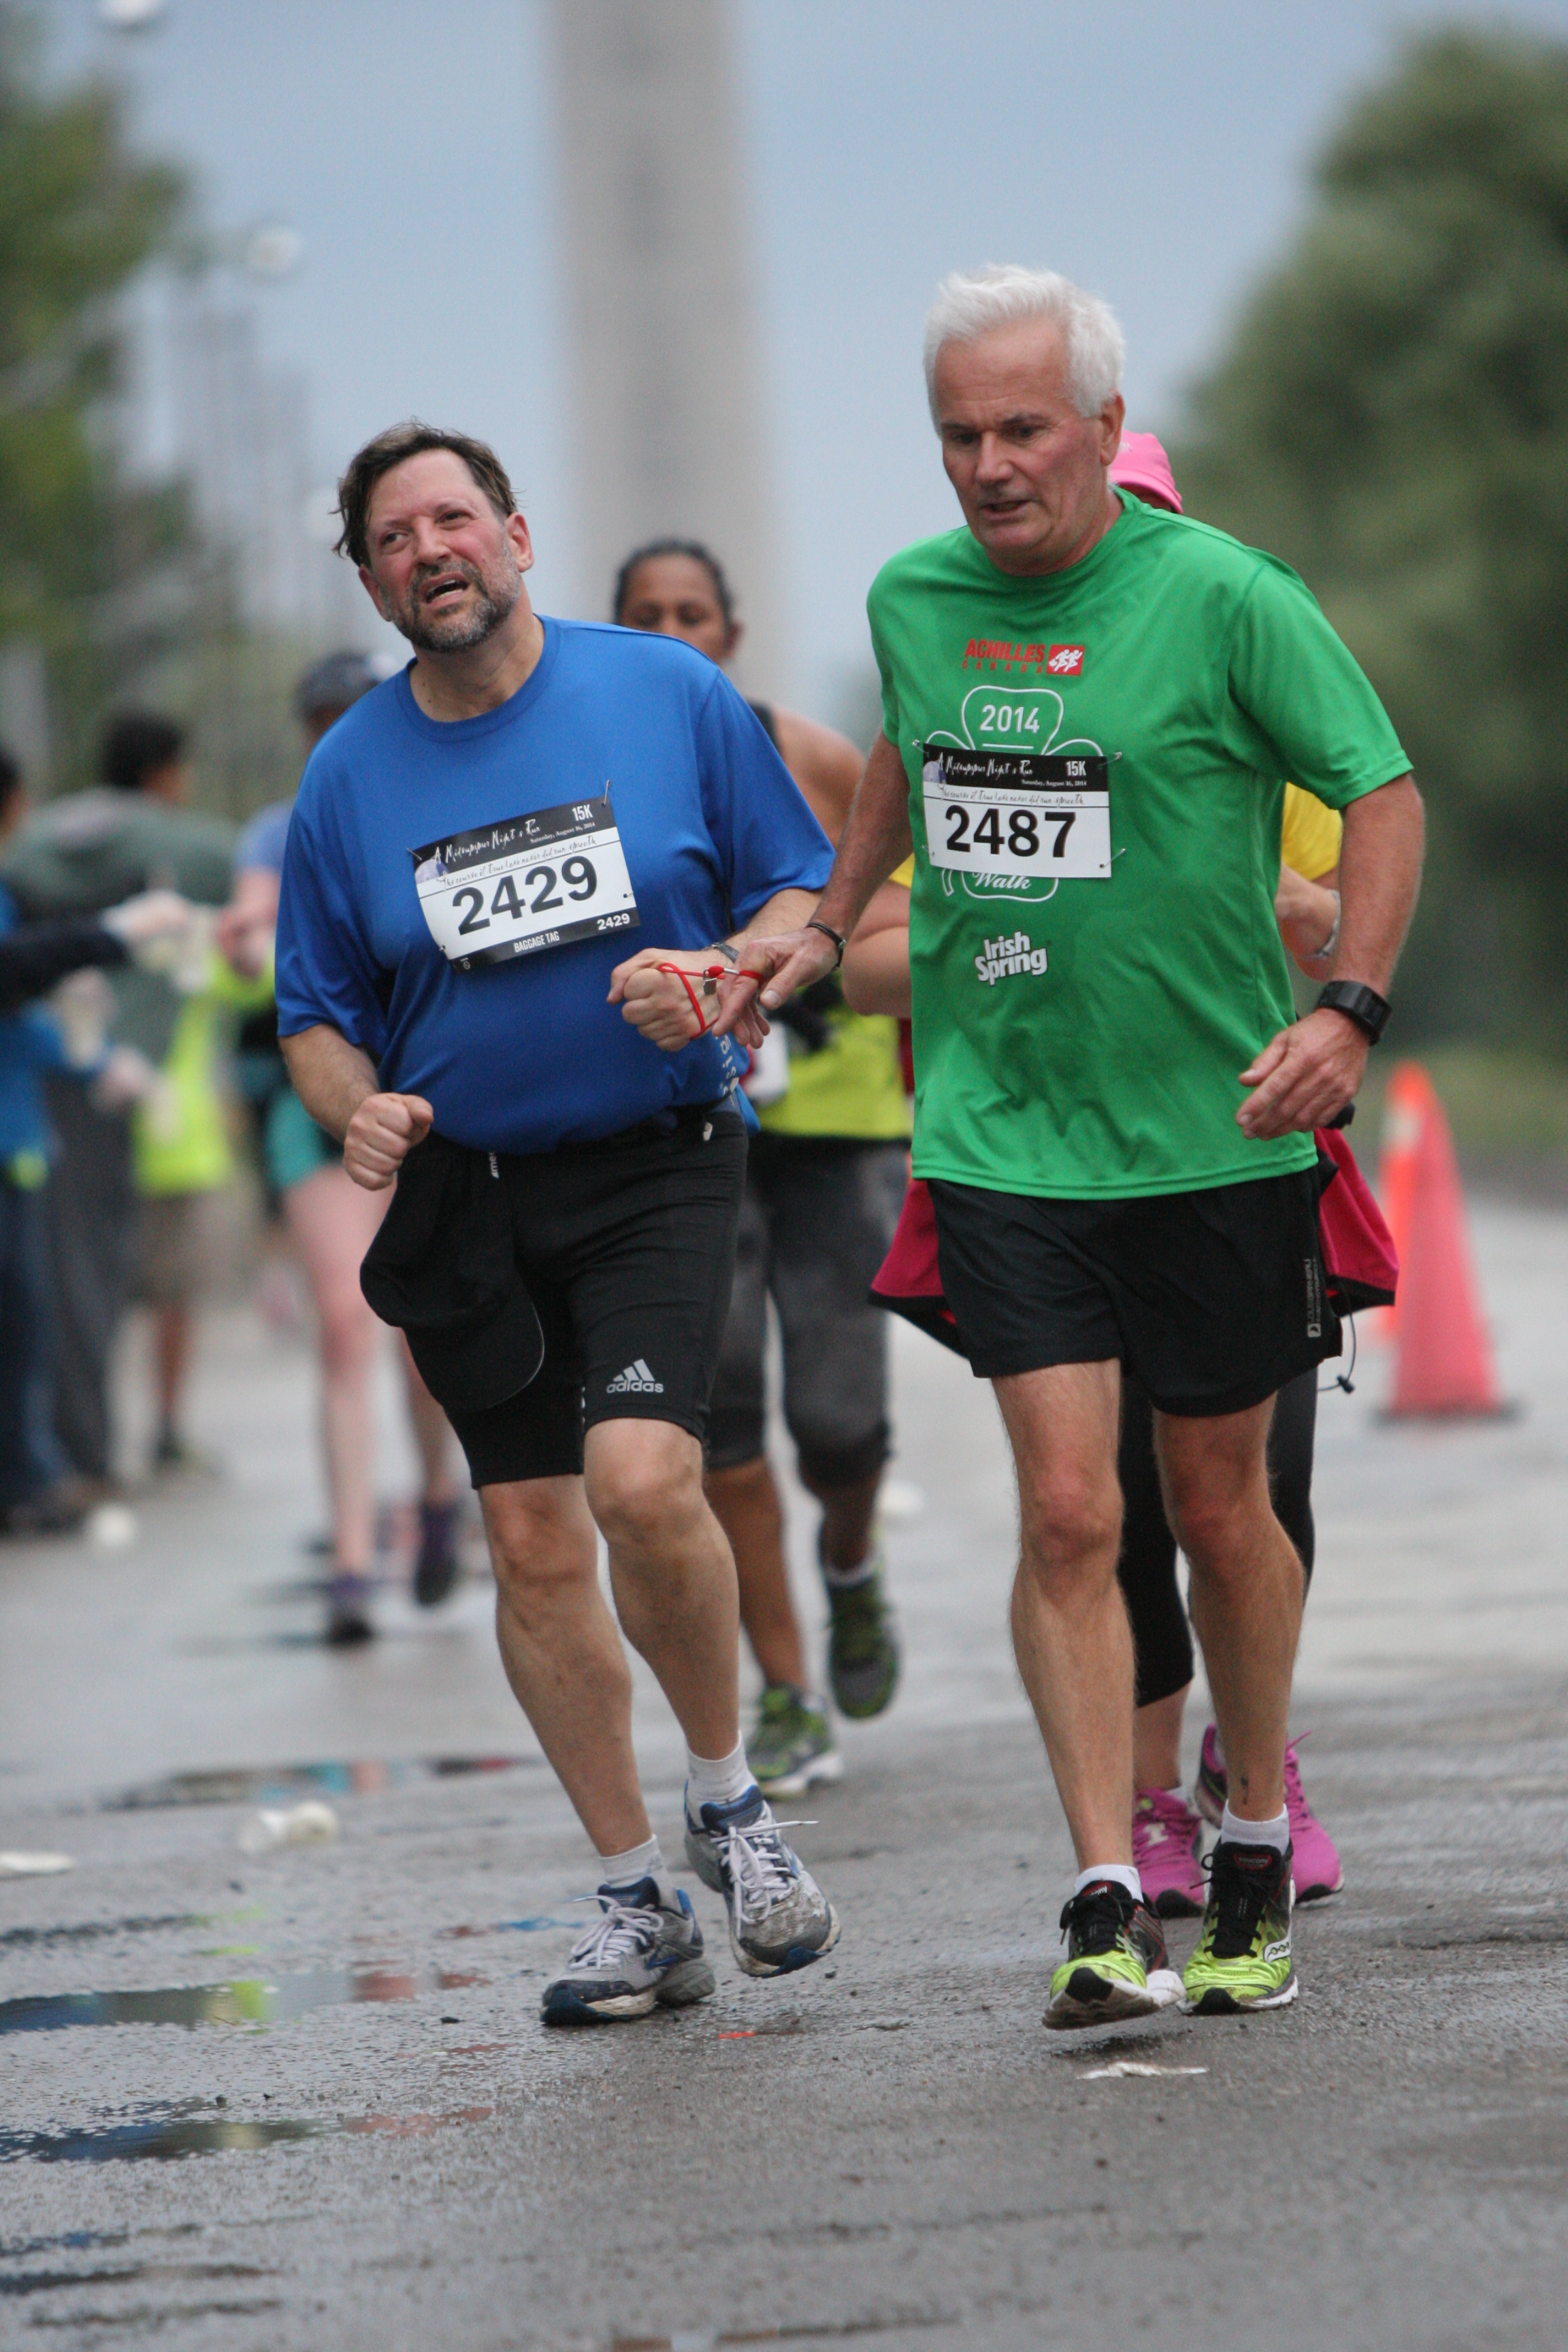 A volunteer and athlete running together